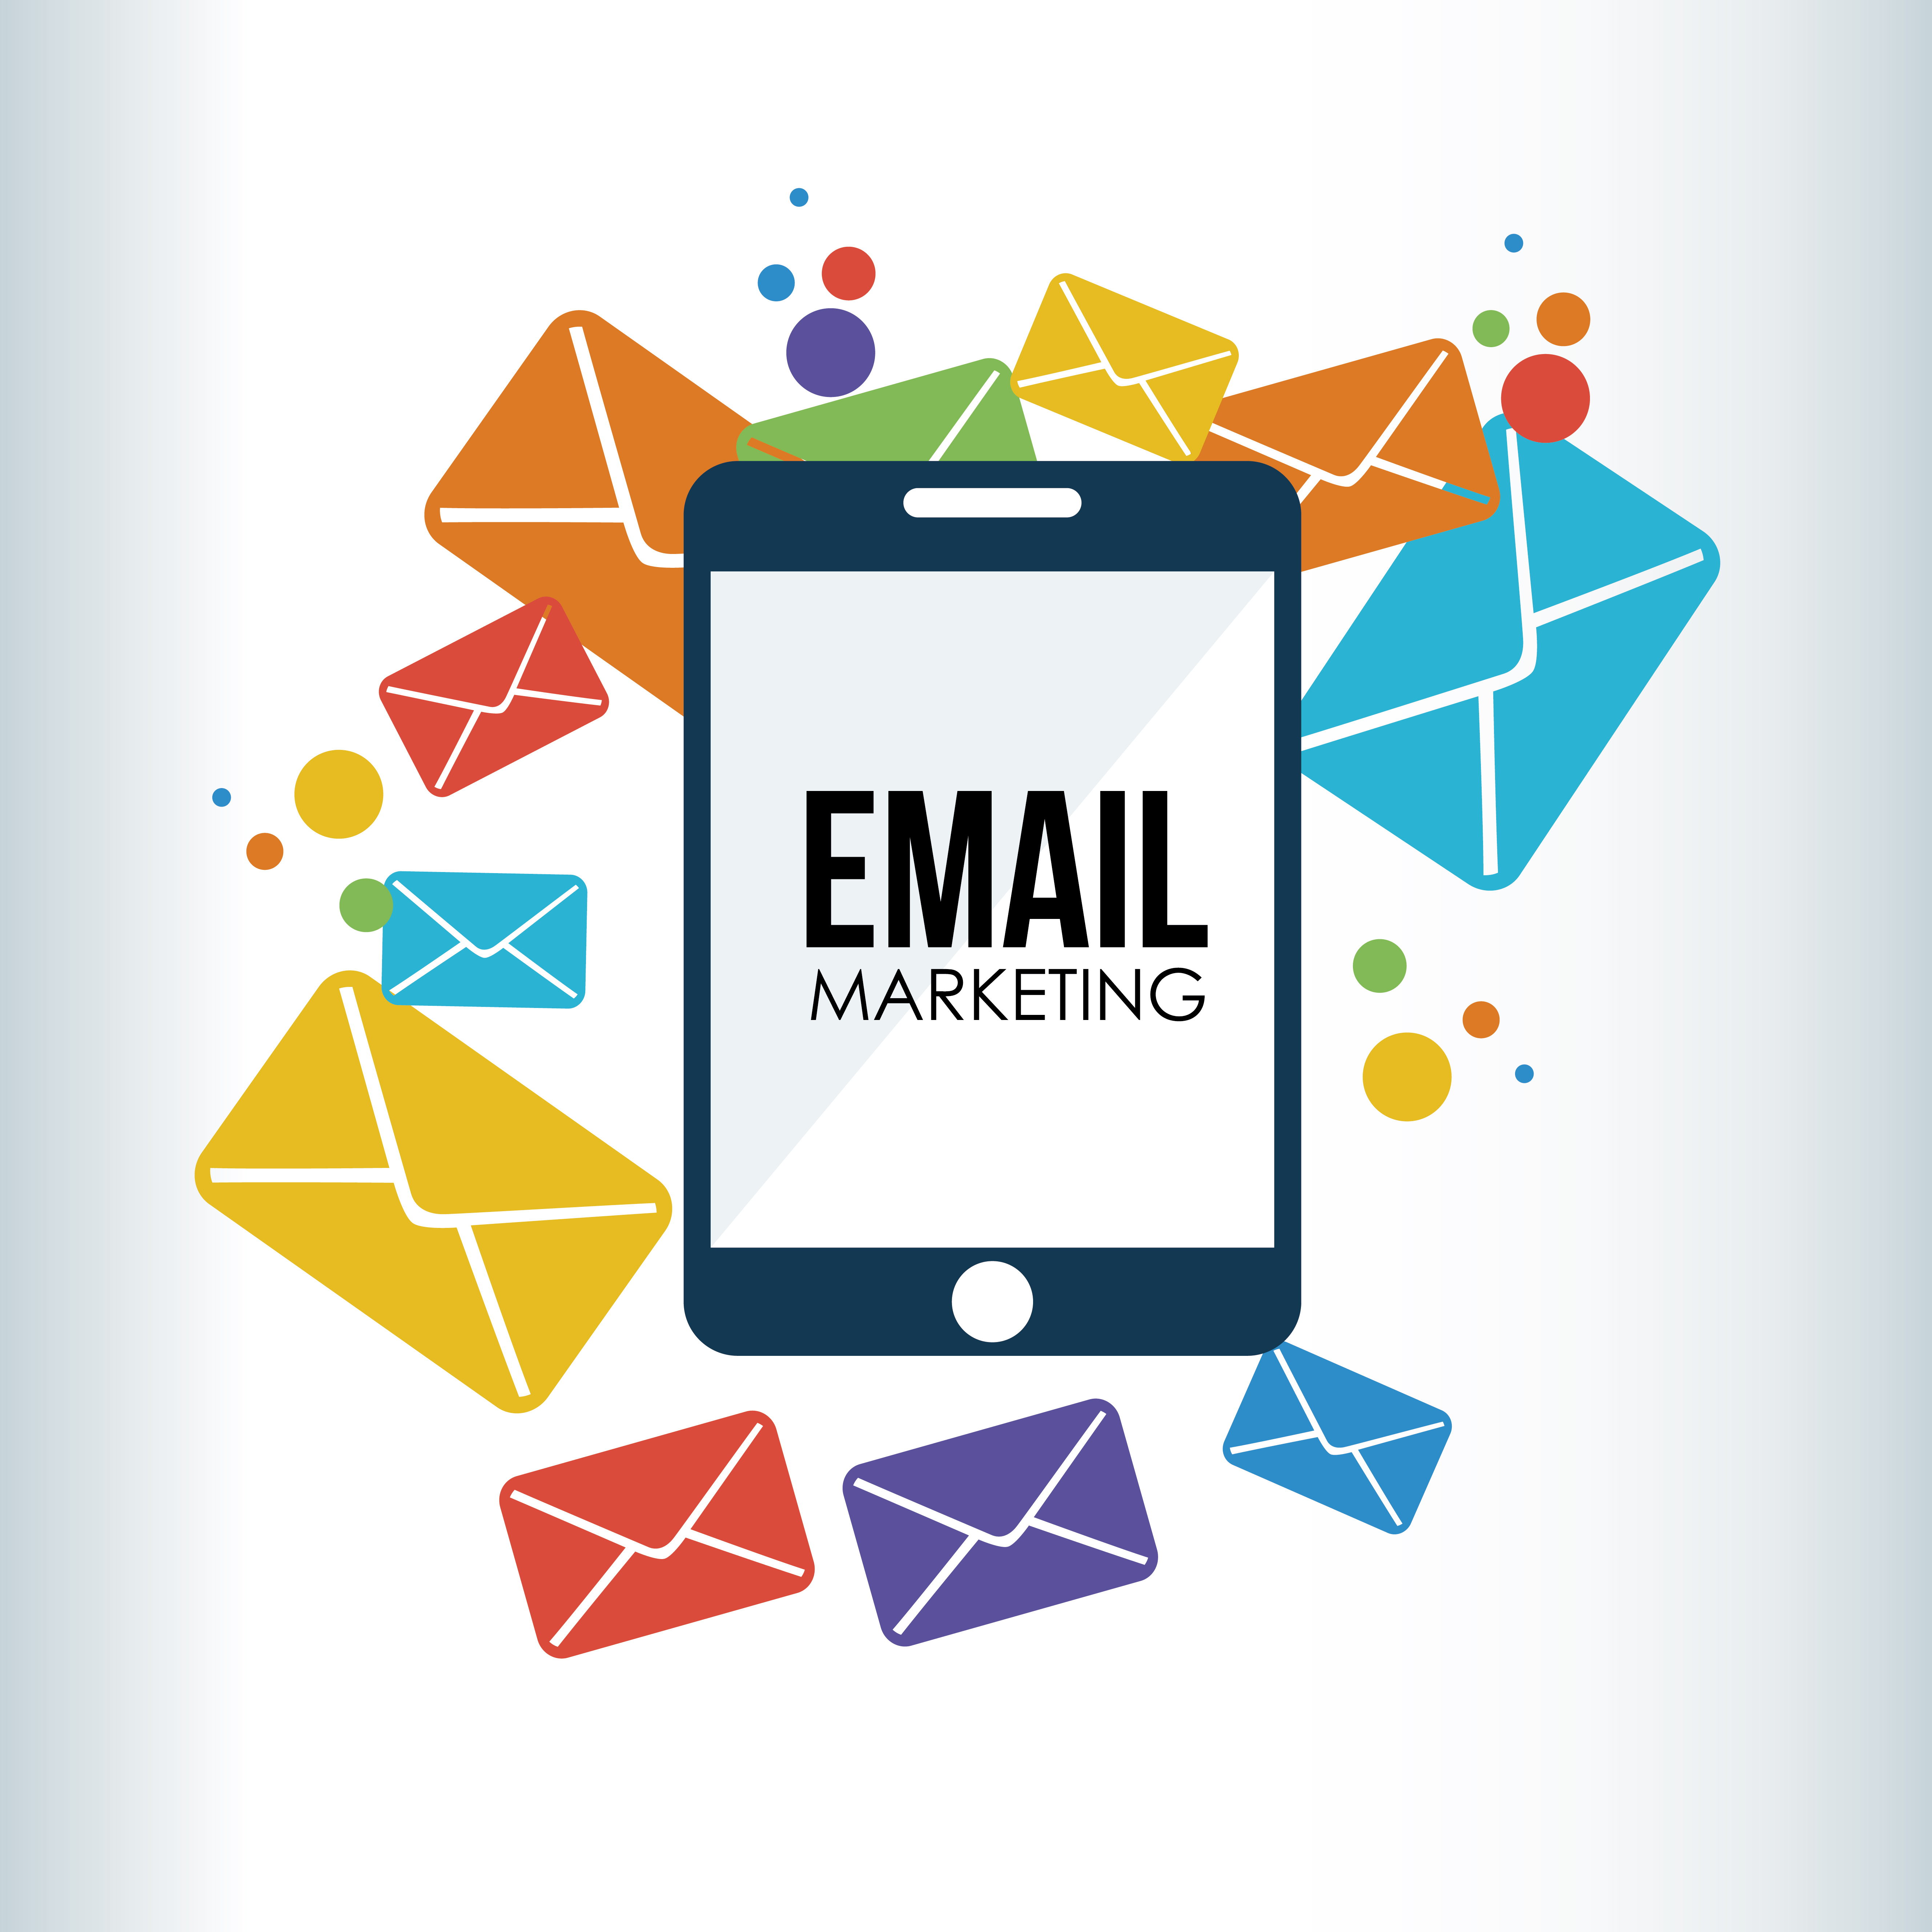 email marketing strategy Archives - Mike Ncube - Digital